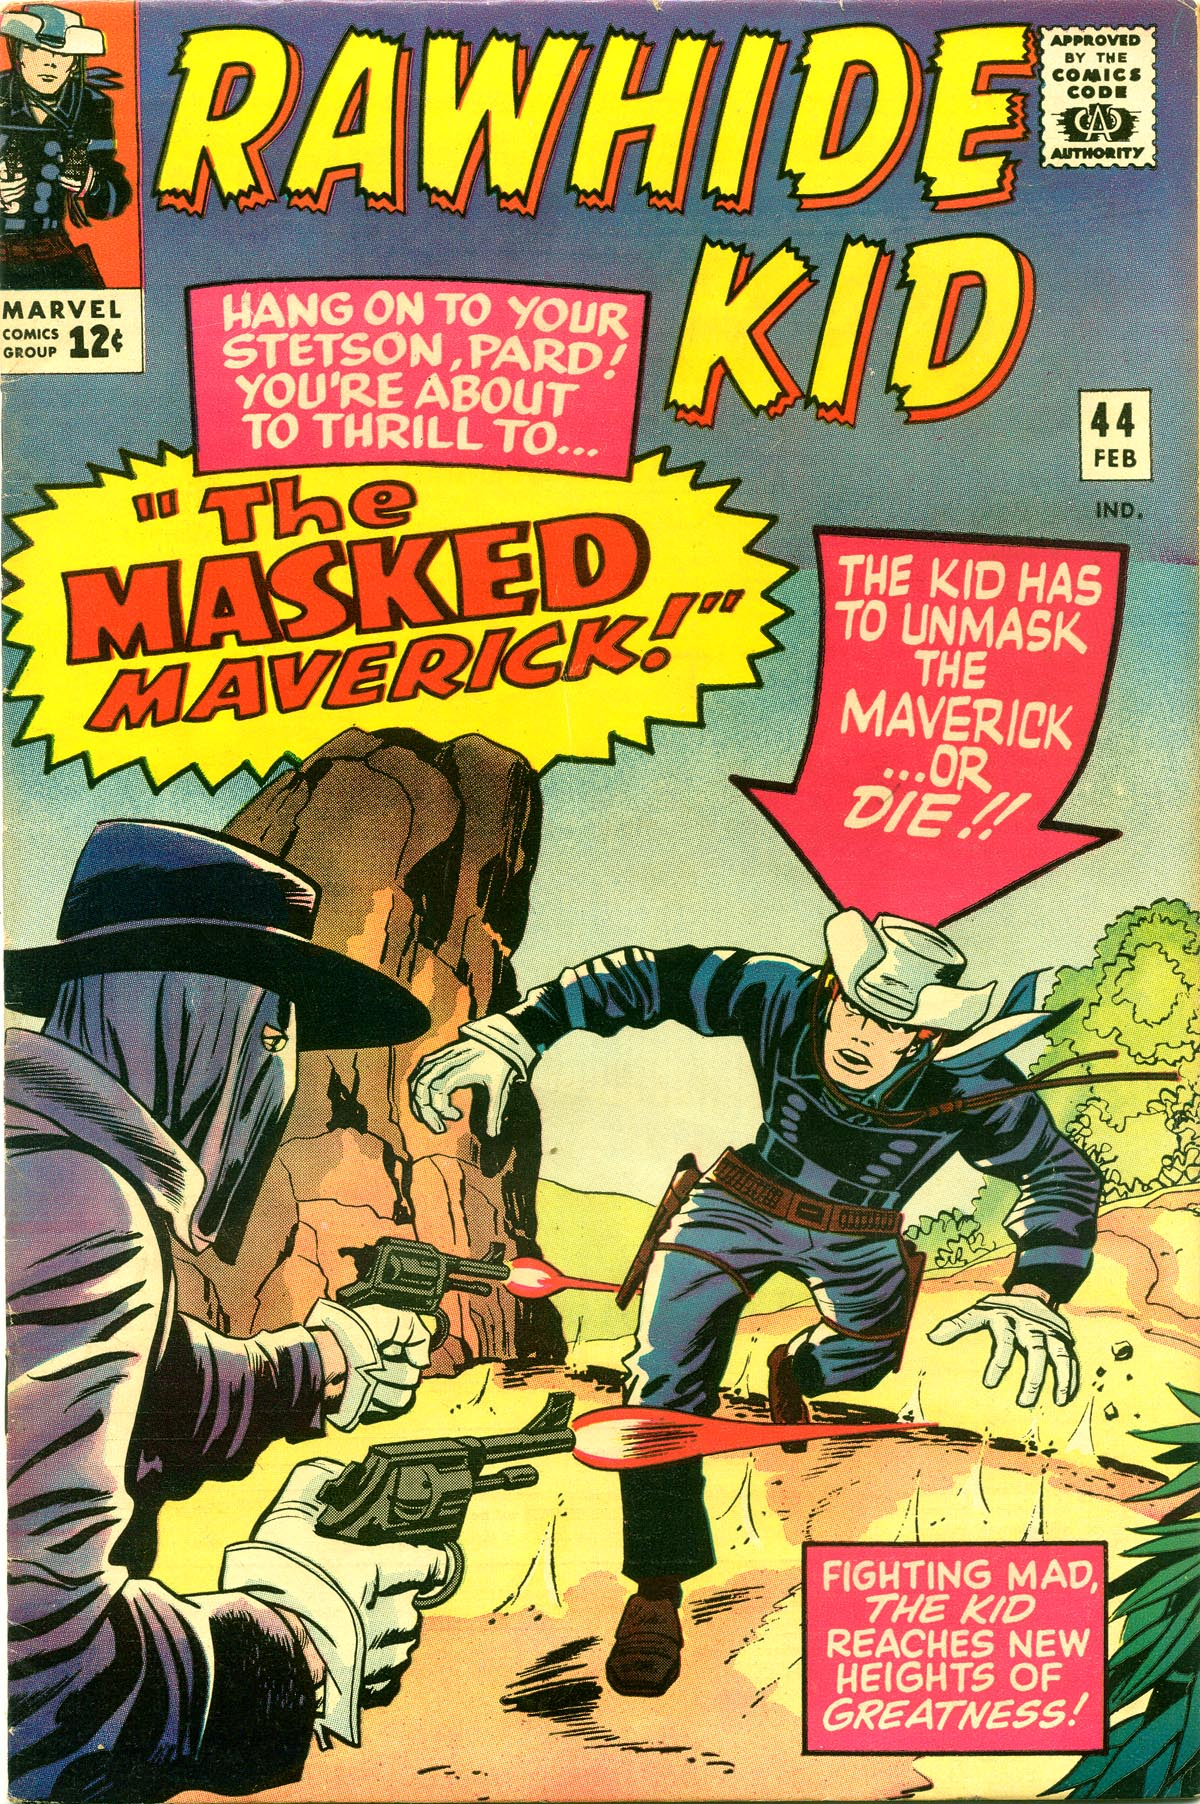 The Rawhide Kid (1955) 44 Page 1